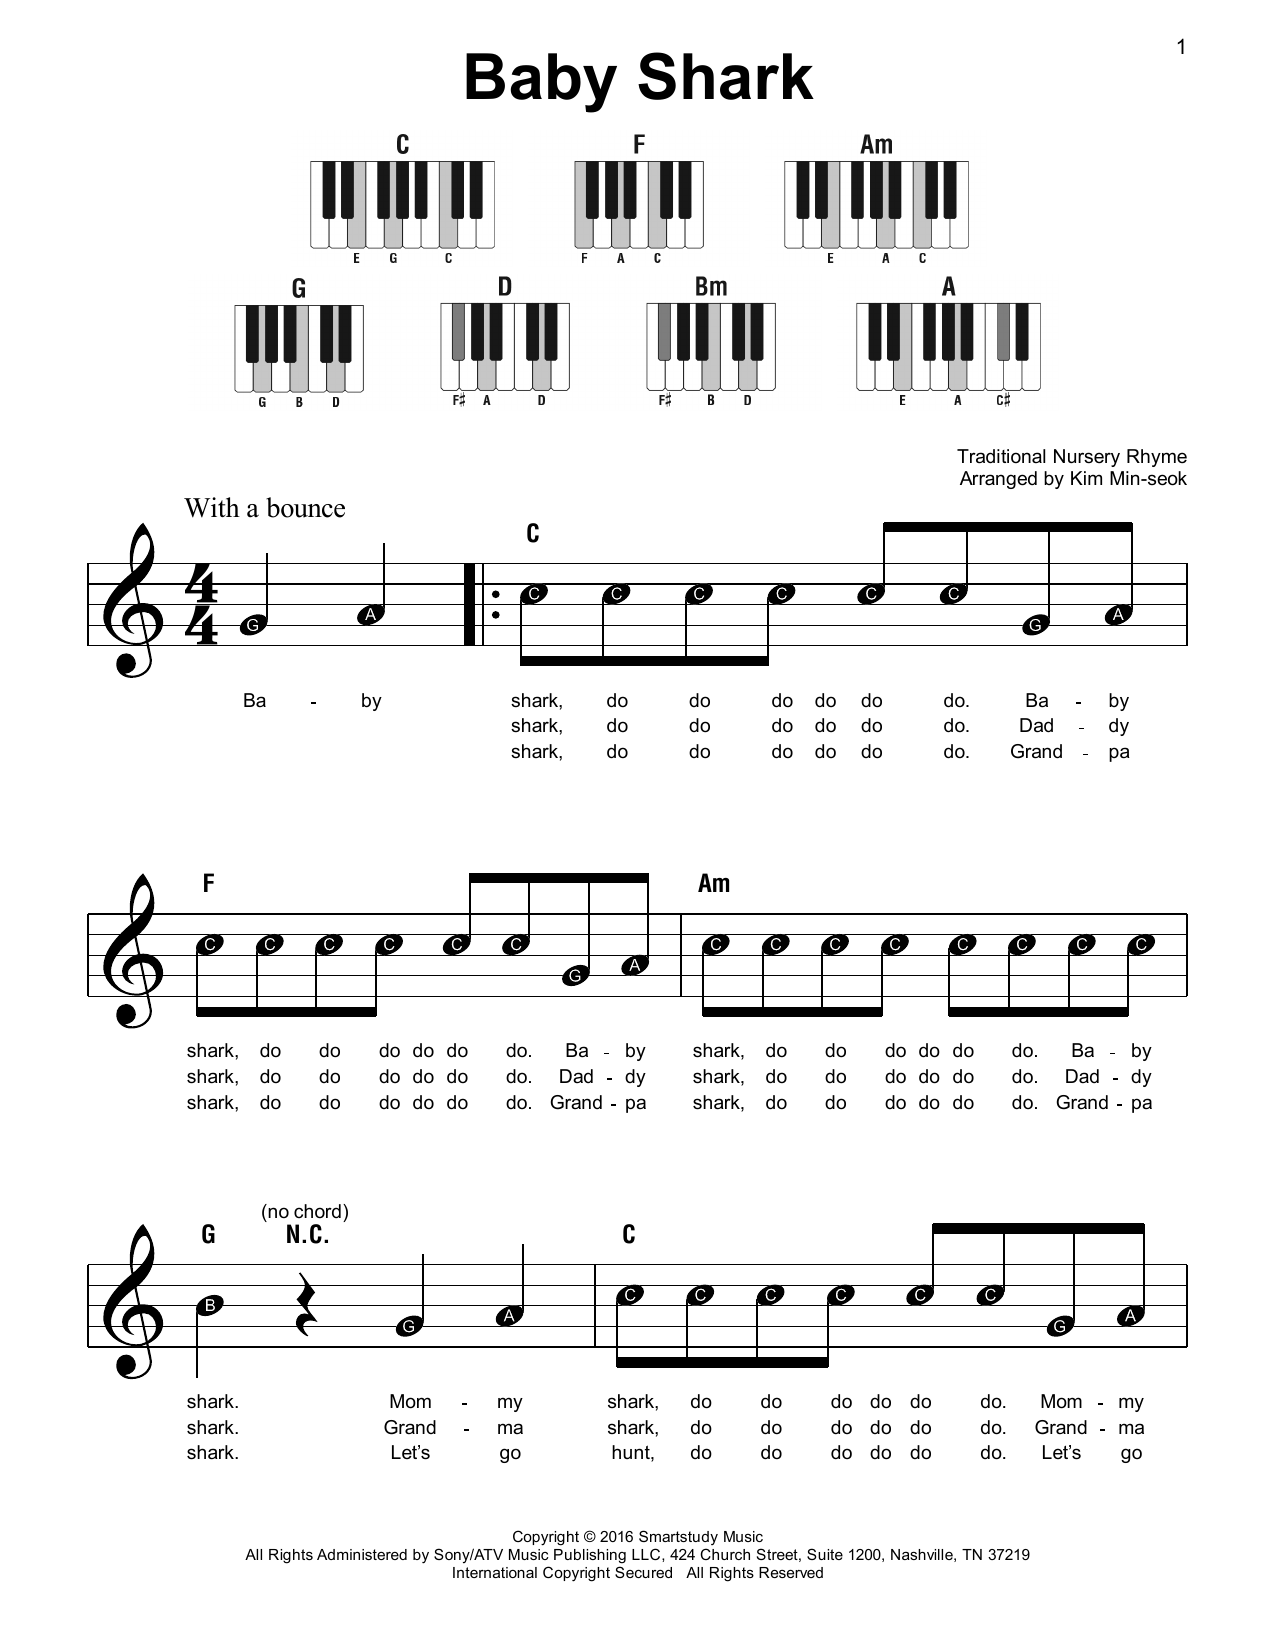 Pinkfong Baby Shark sheet music notes printable PDF score